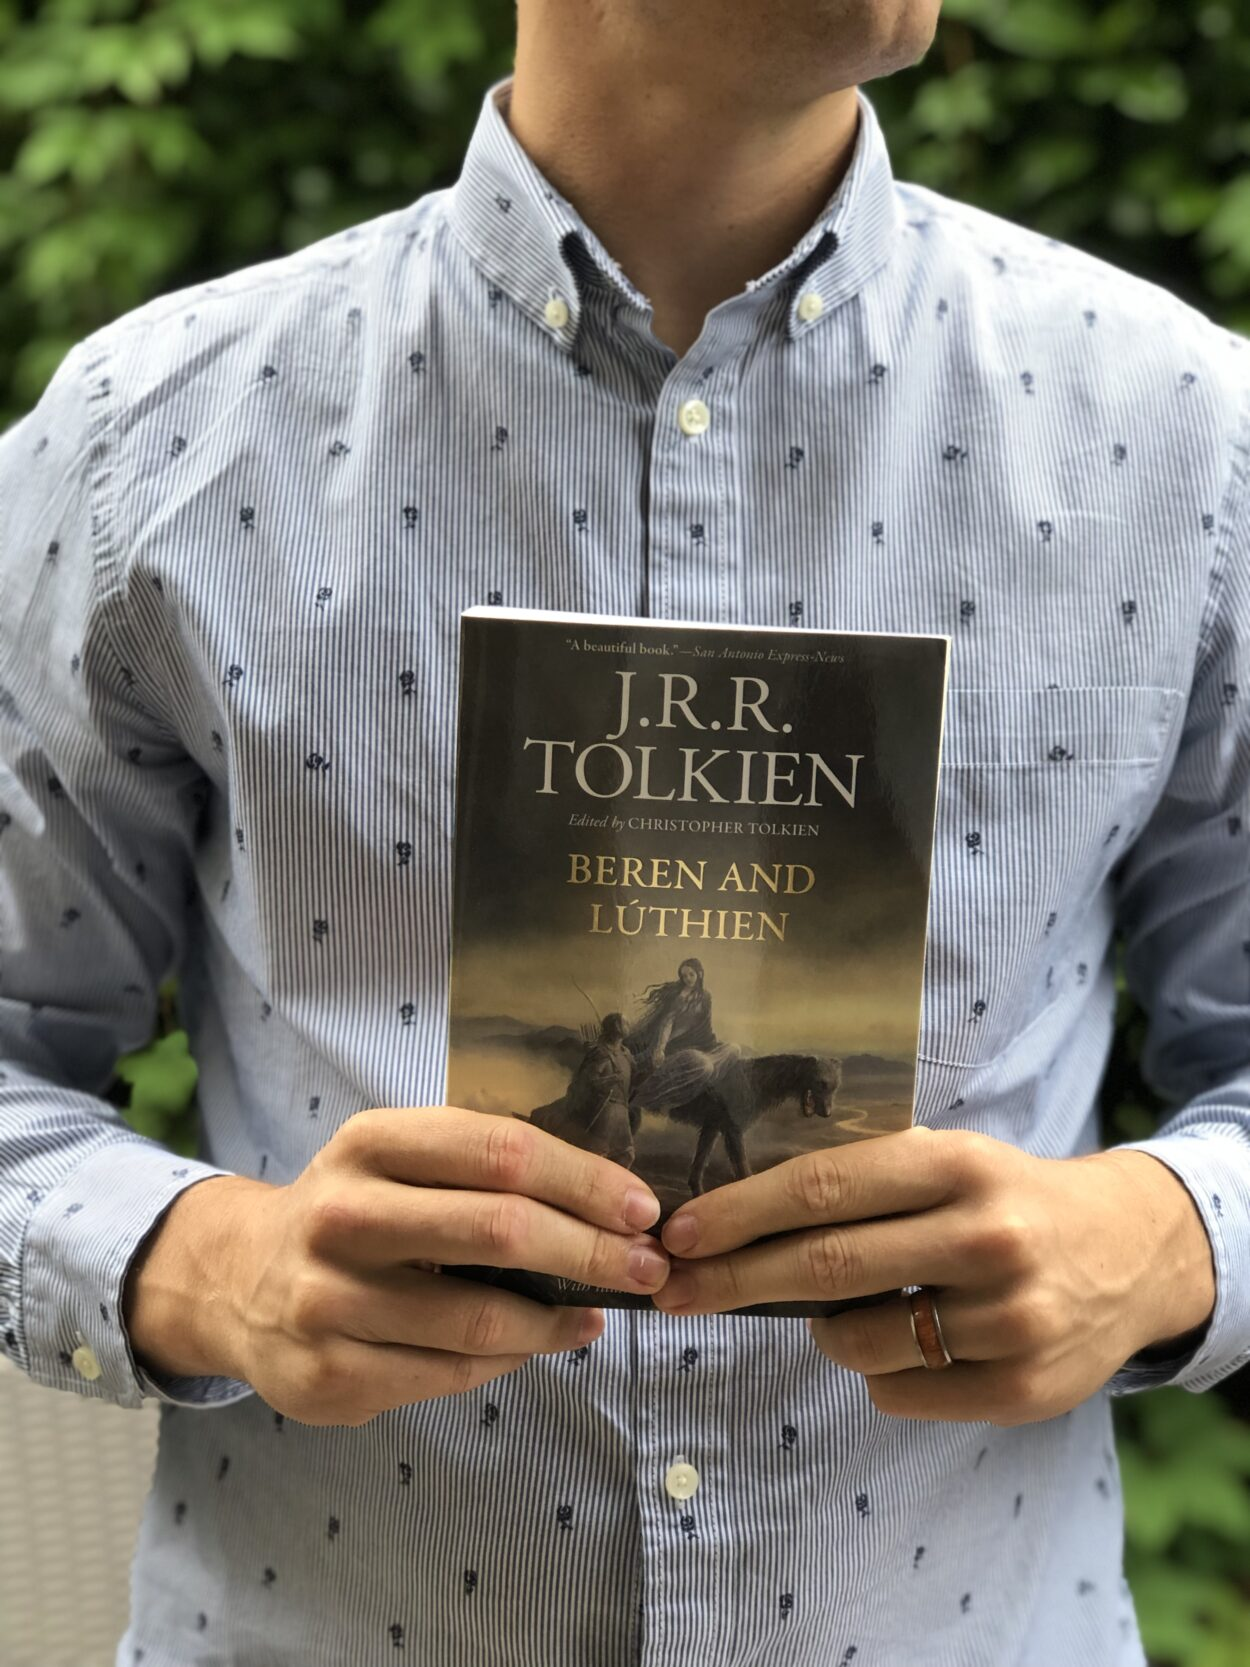 Man in dress shirt holding book by Tolkien